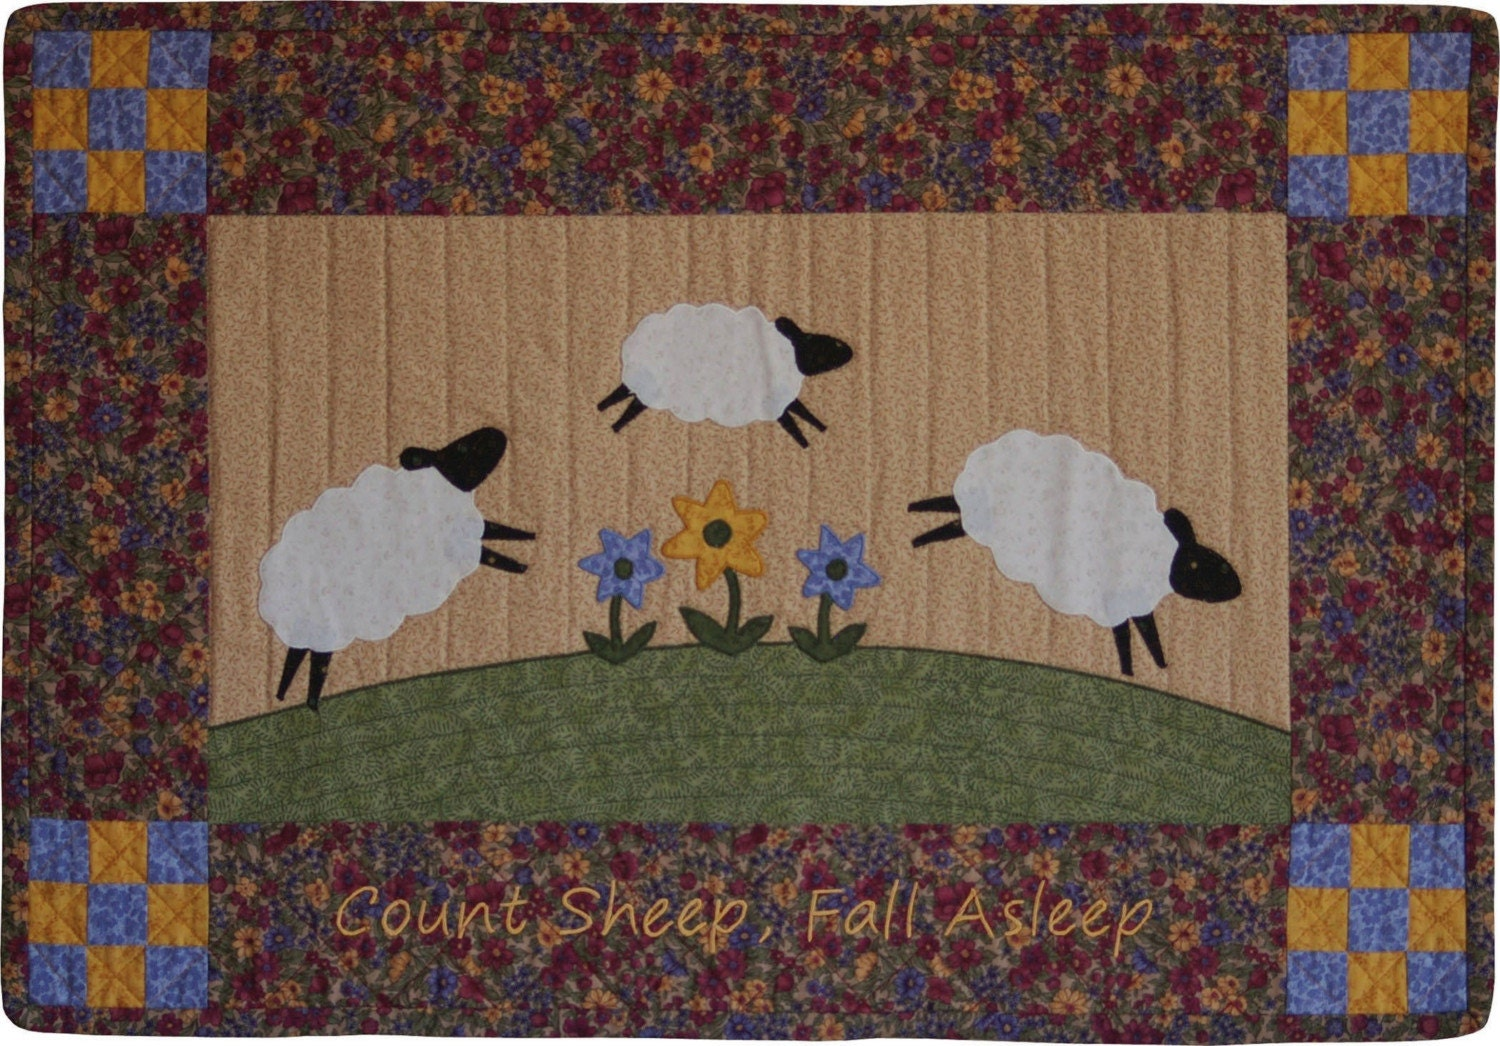 Count Sheep Quilt Wall Hanging Pattern By Sunflowerquilts